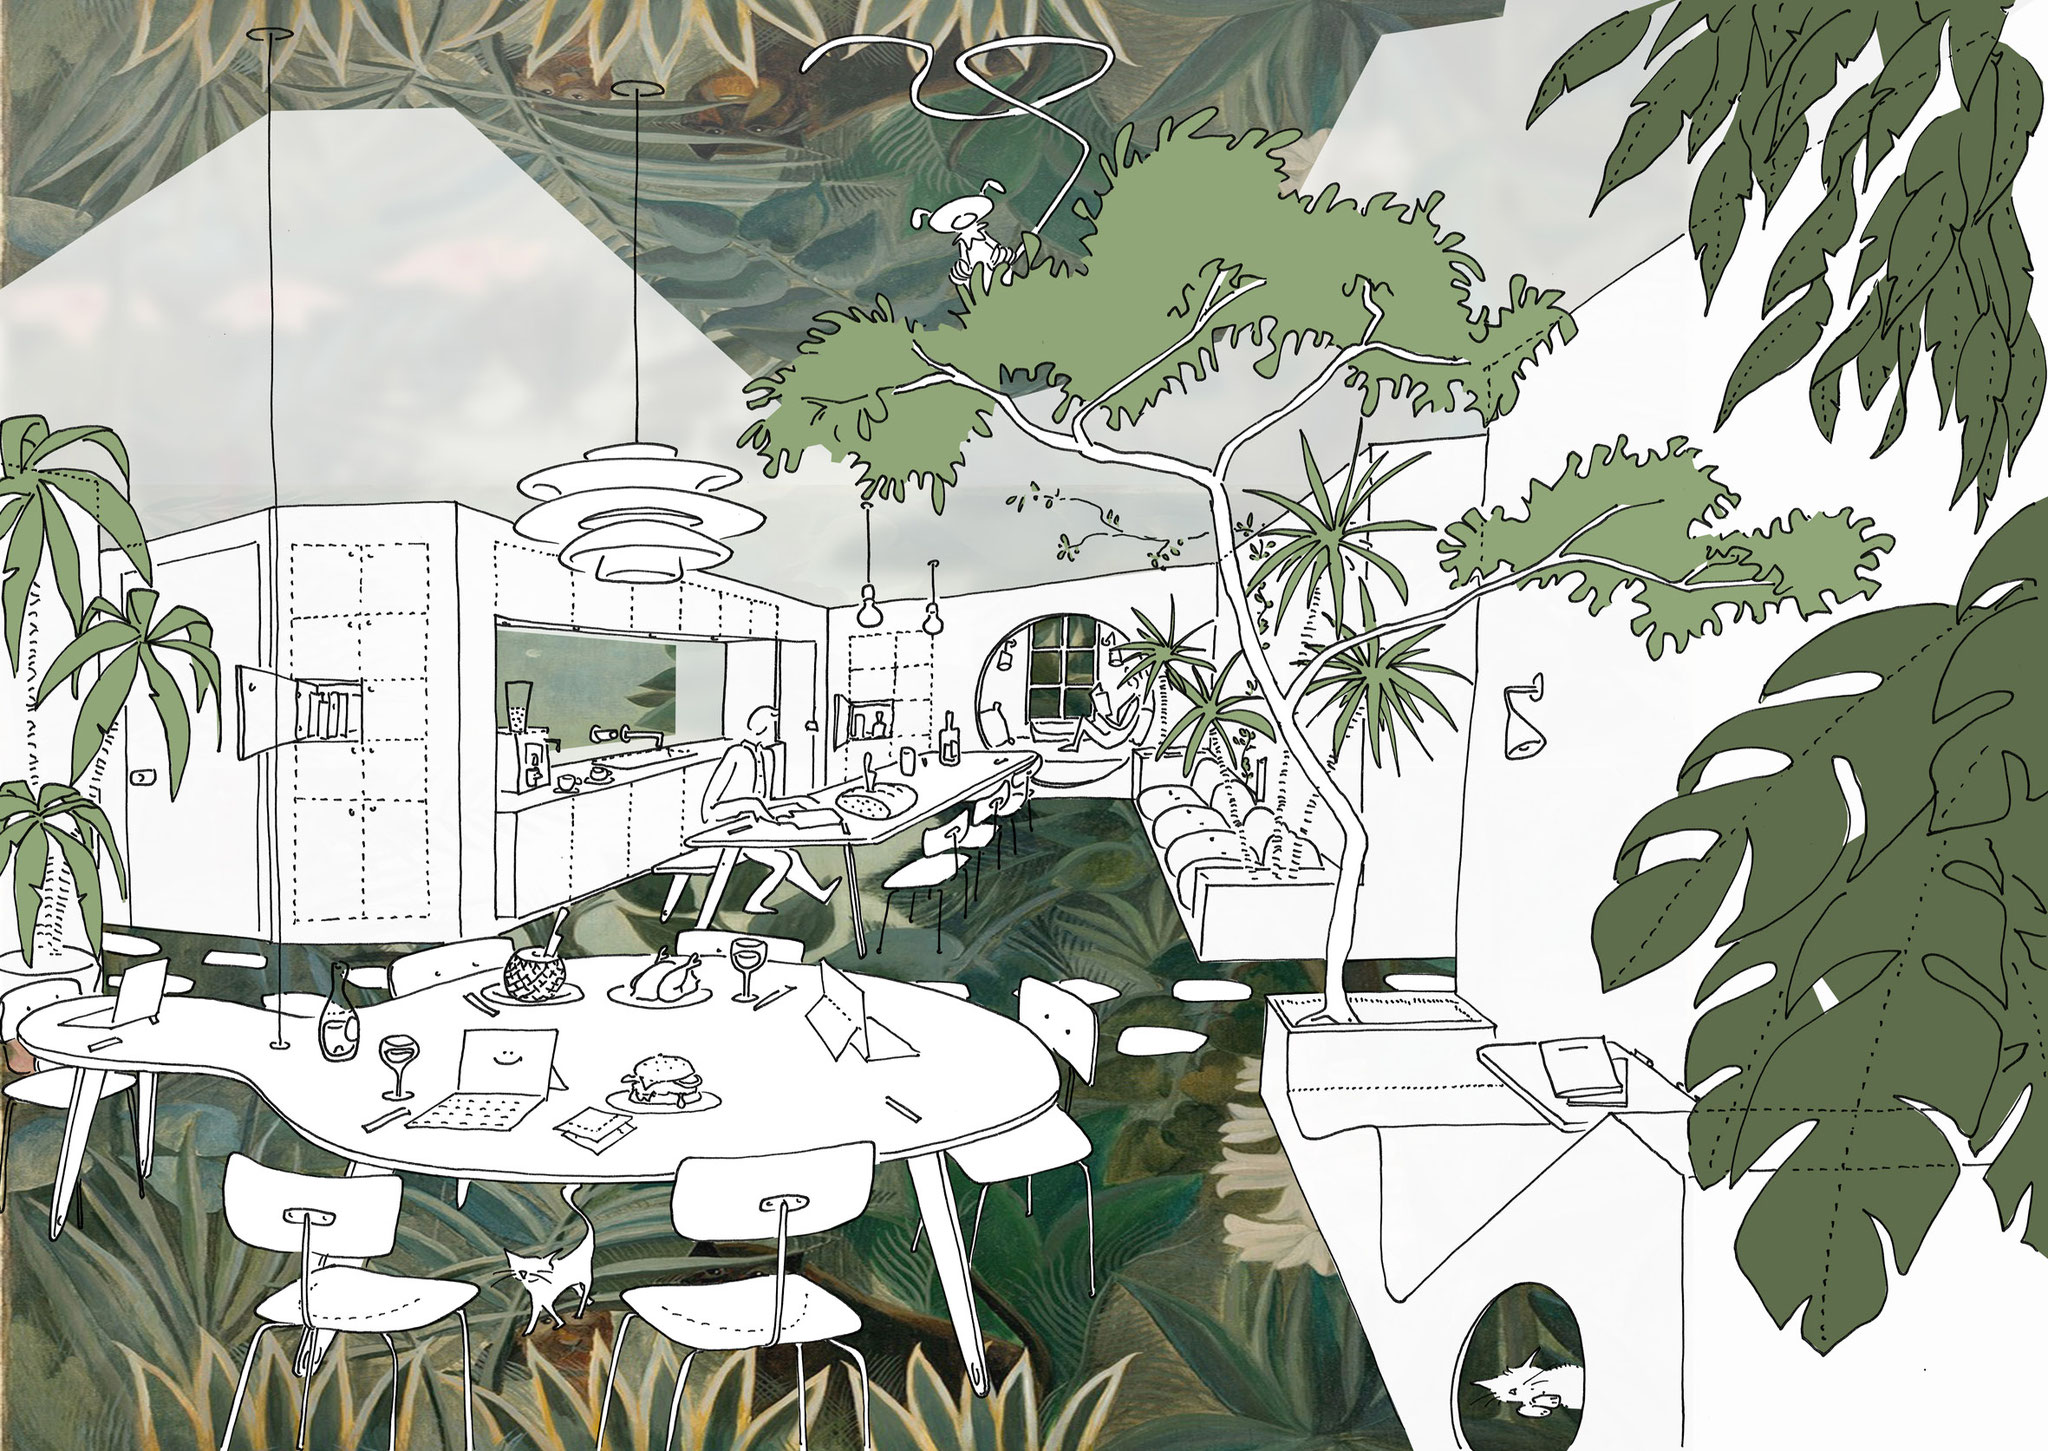 Croquis d'intention pour la cuisine jungle - Concept art for the jungle kitchen